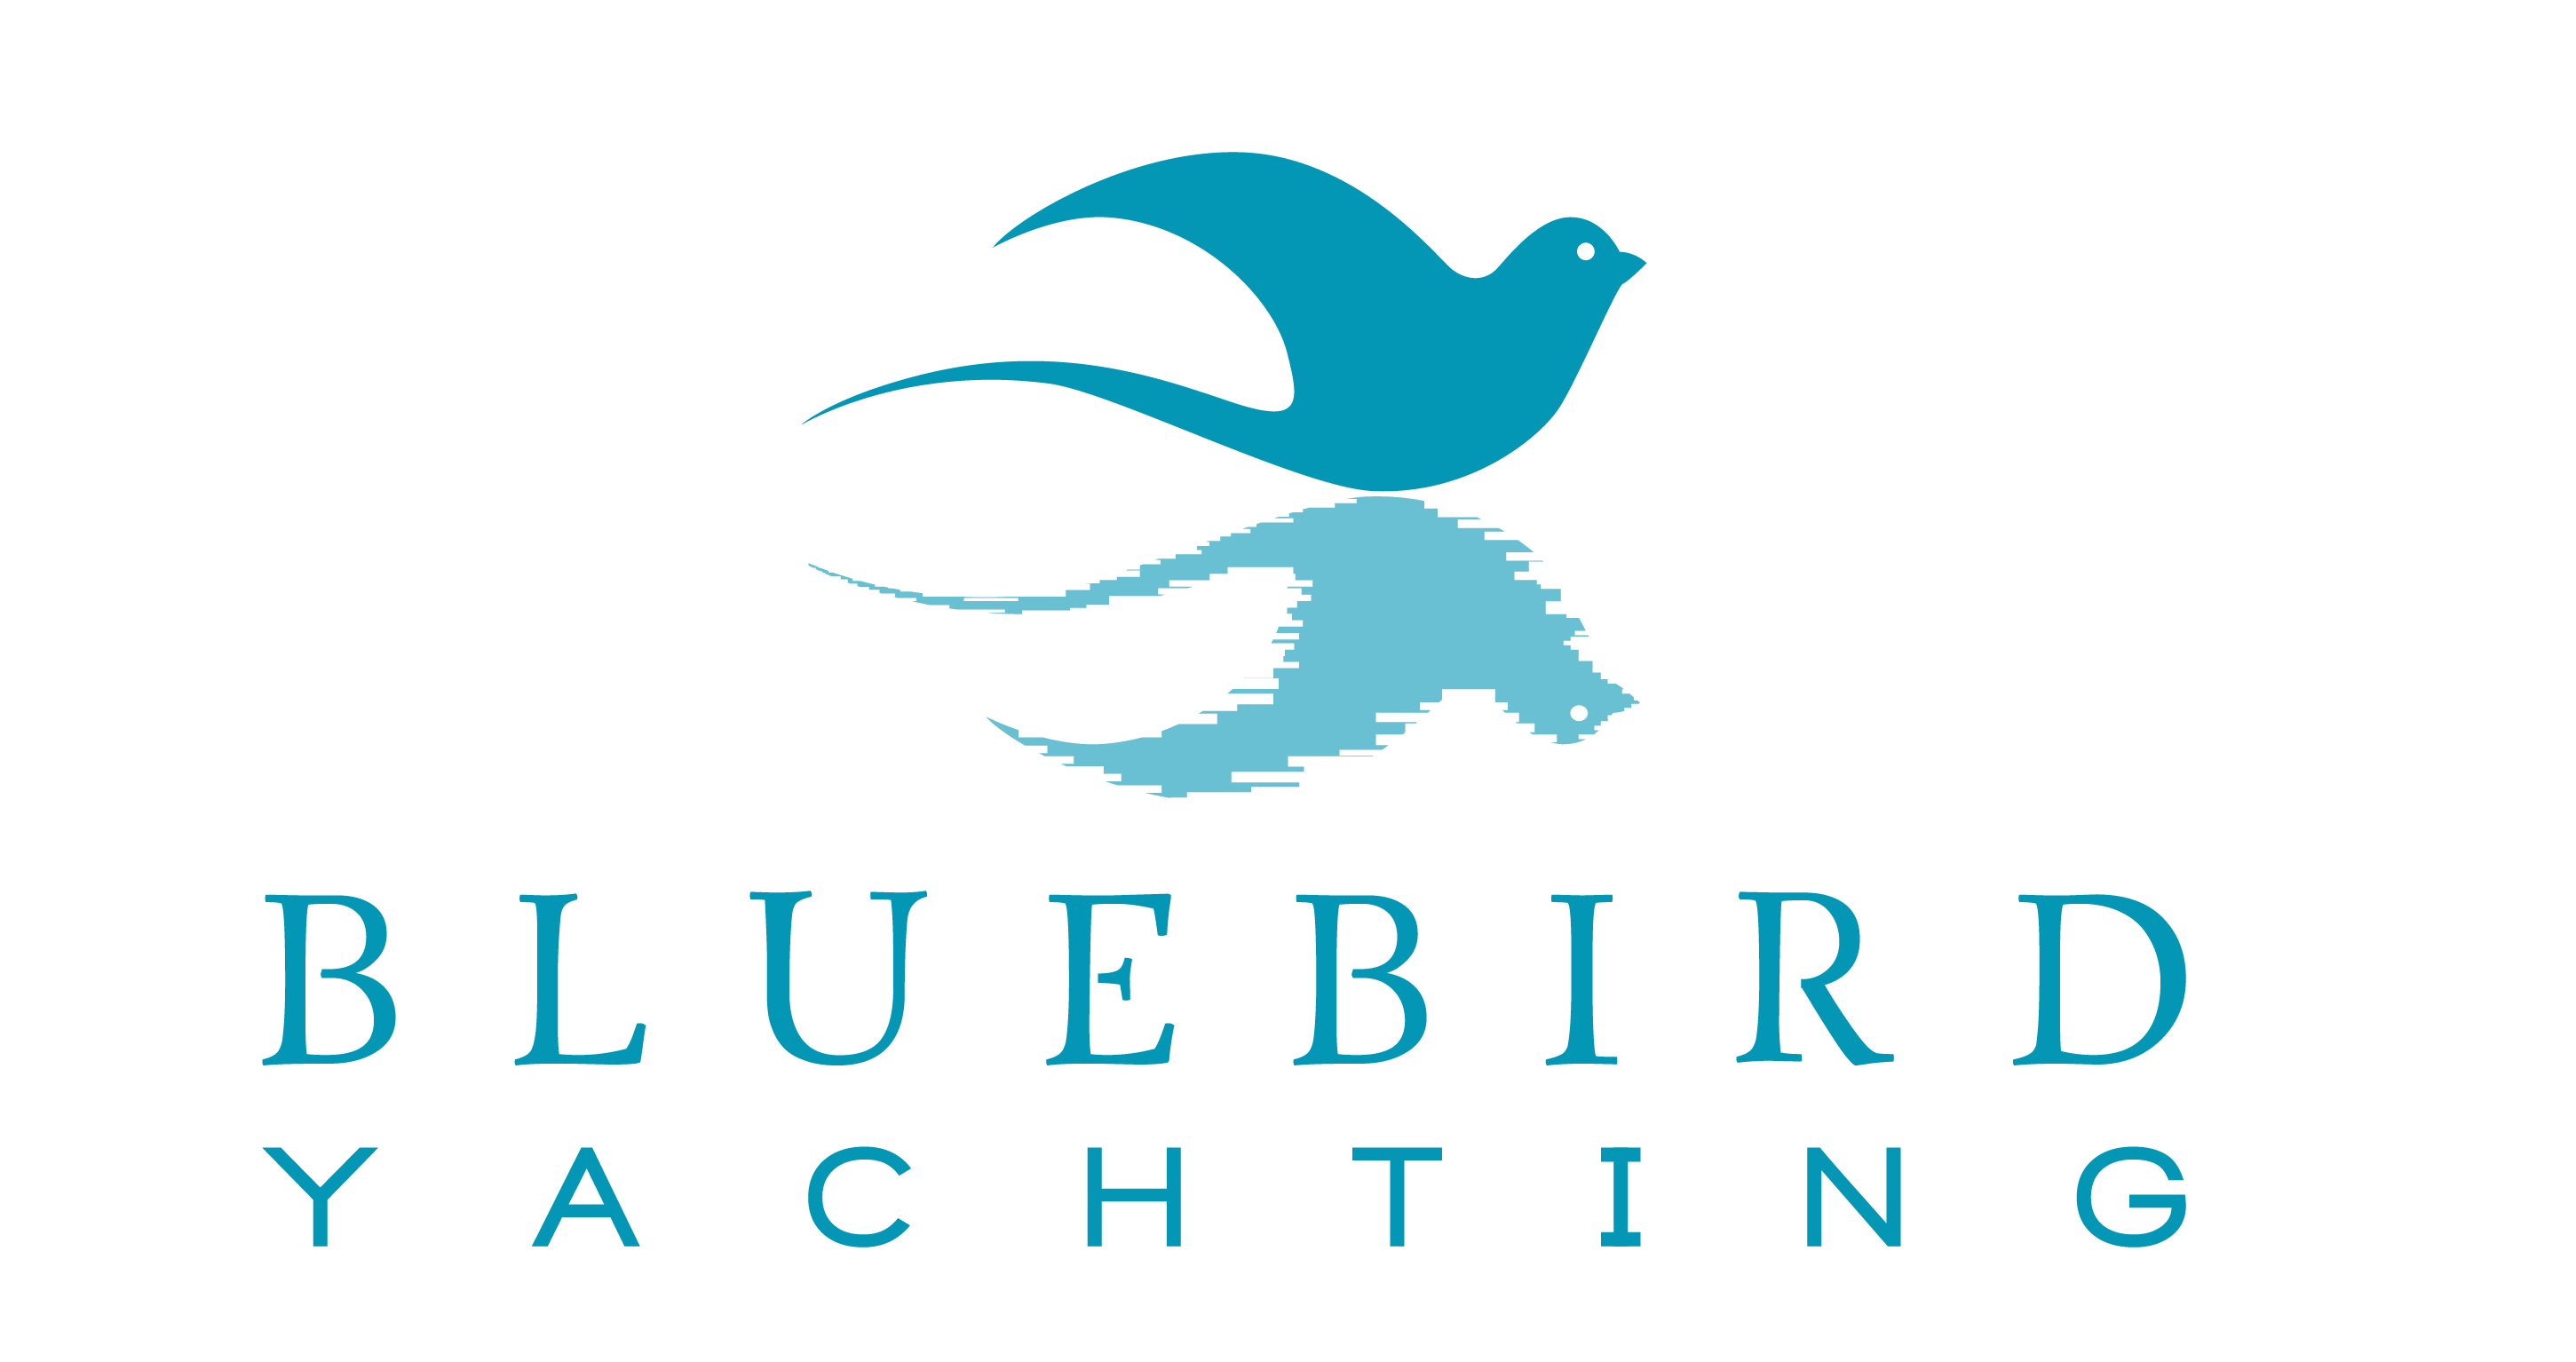 Bluebird Yachting | Amalfi Coast, Capri and Ischia | Bluebird Yachting